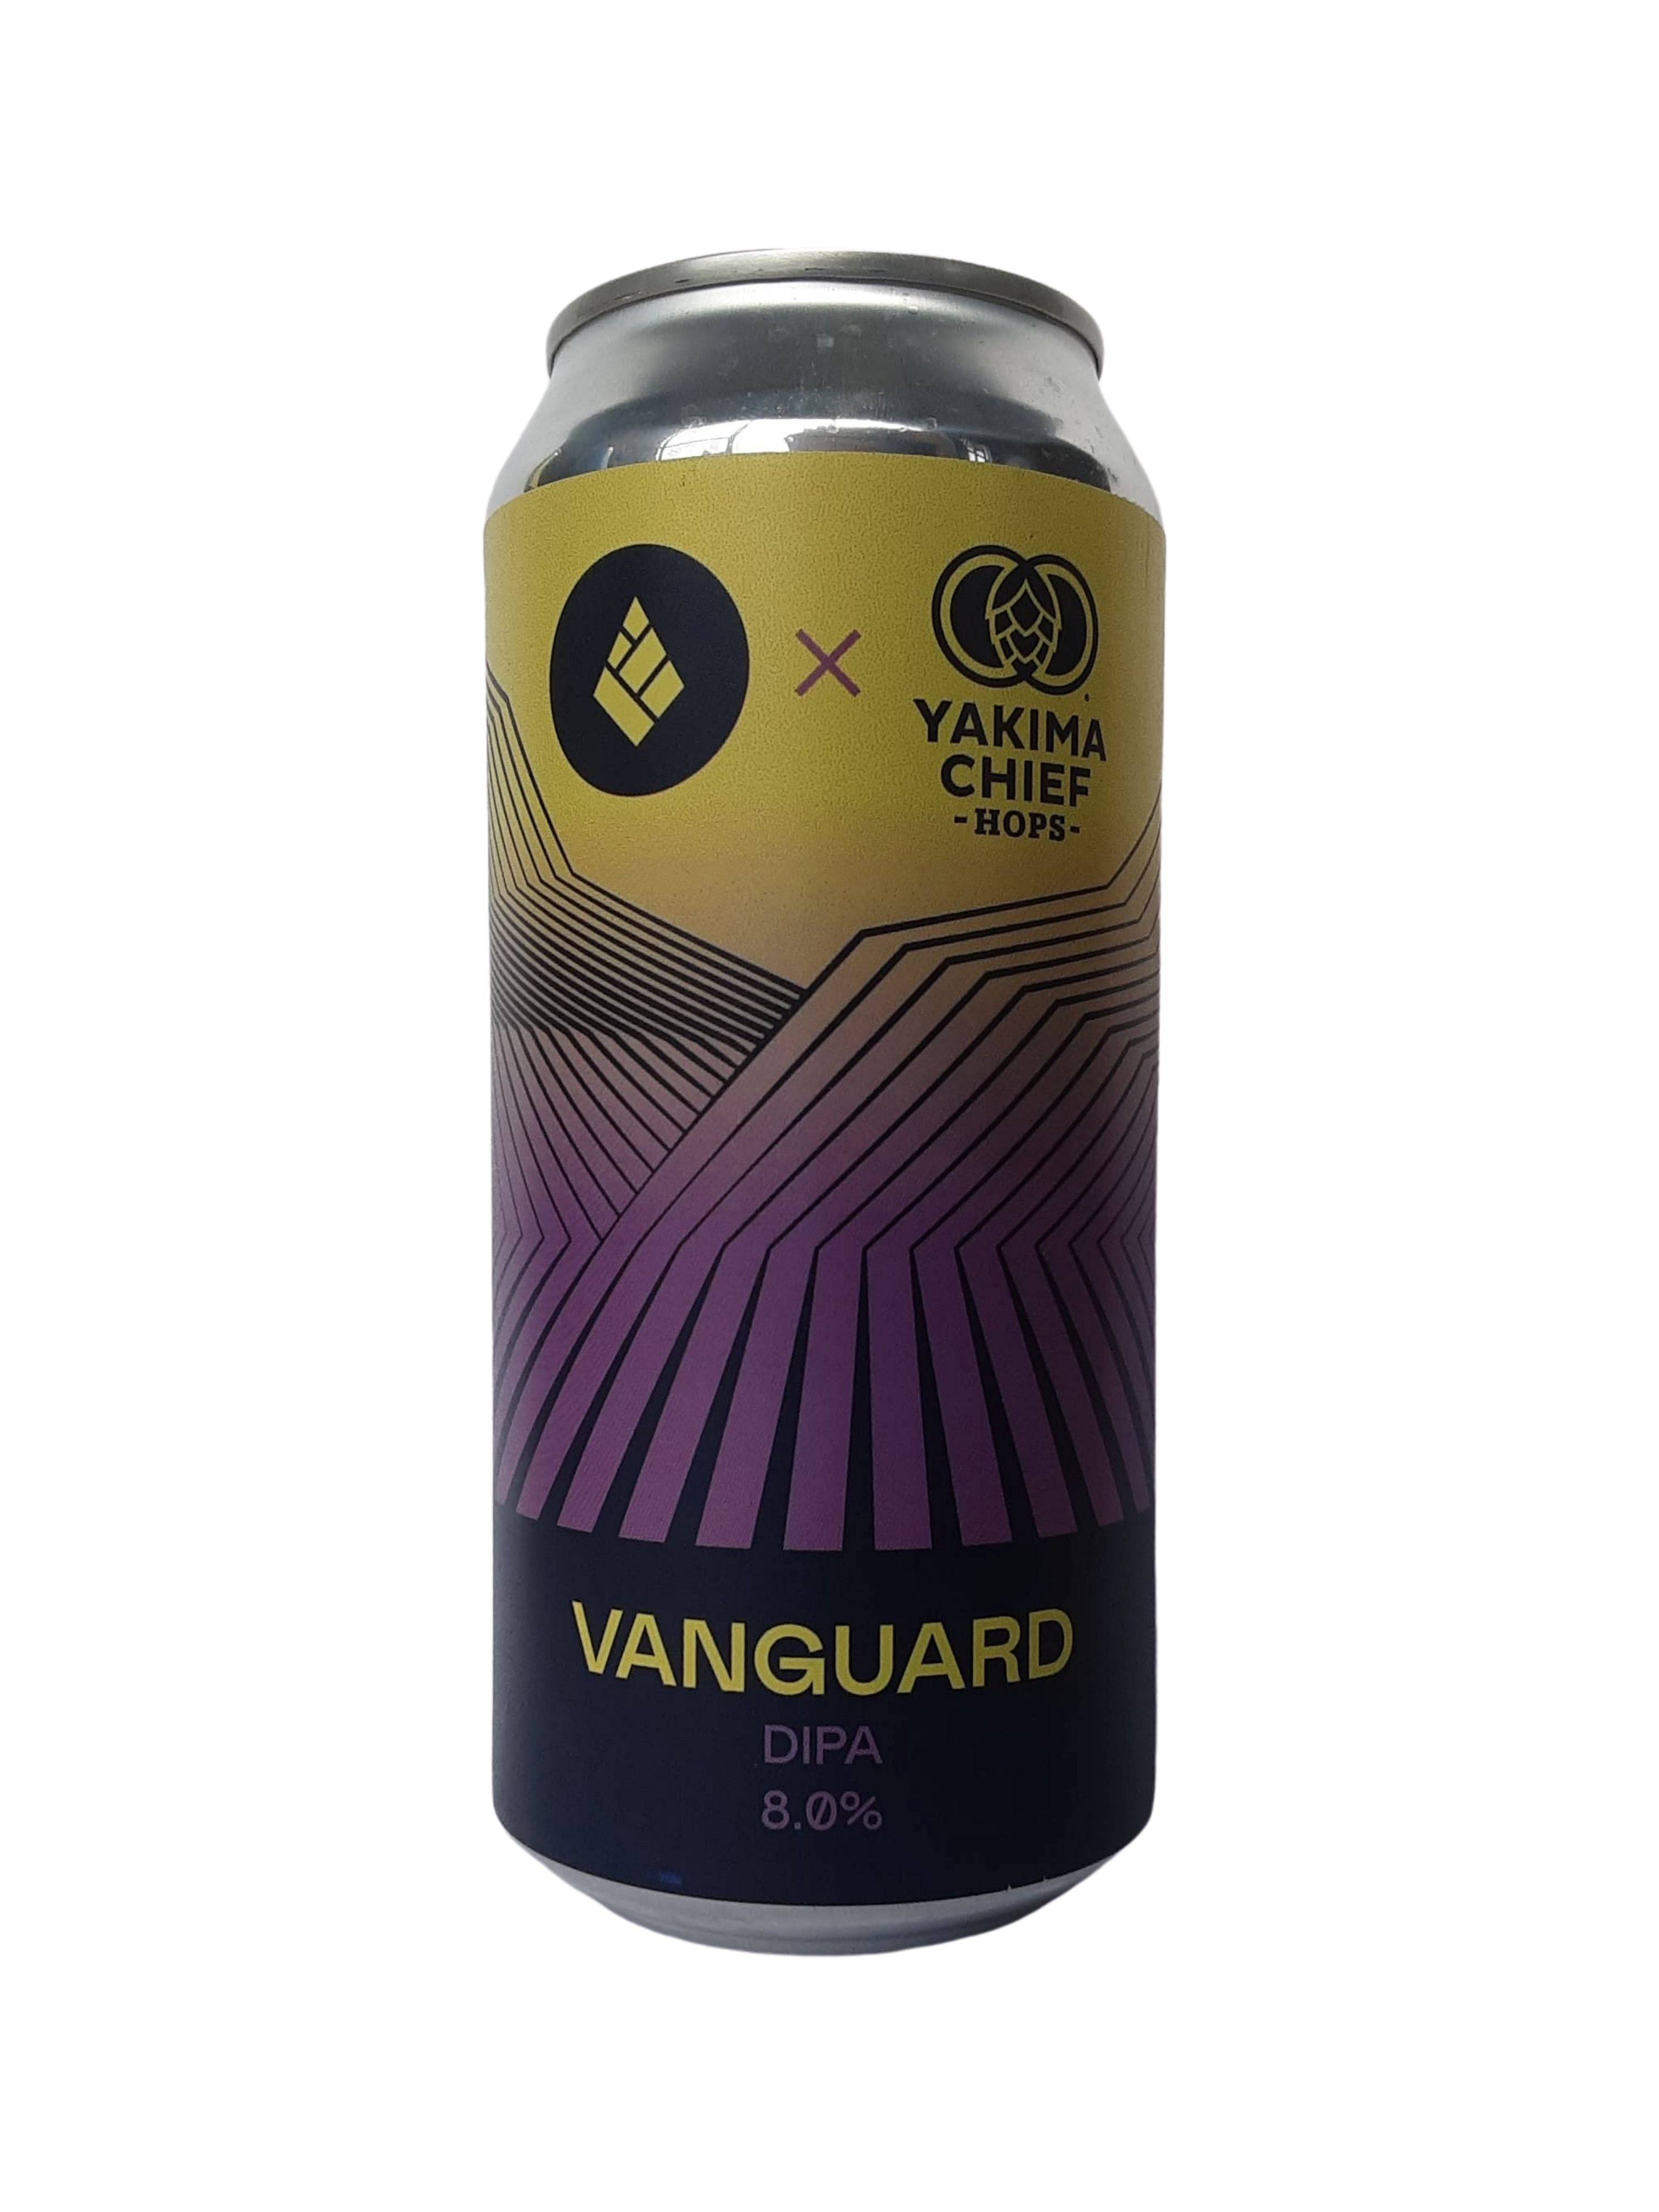 Drop Project and Yakima Chief Hops - Vanguard - DIPA - 8% (Brand New)